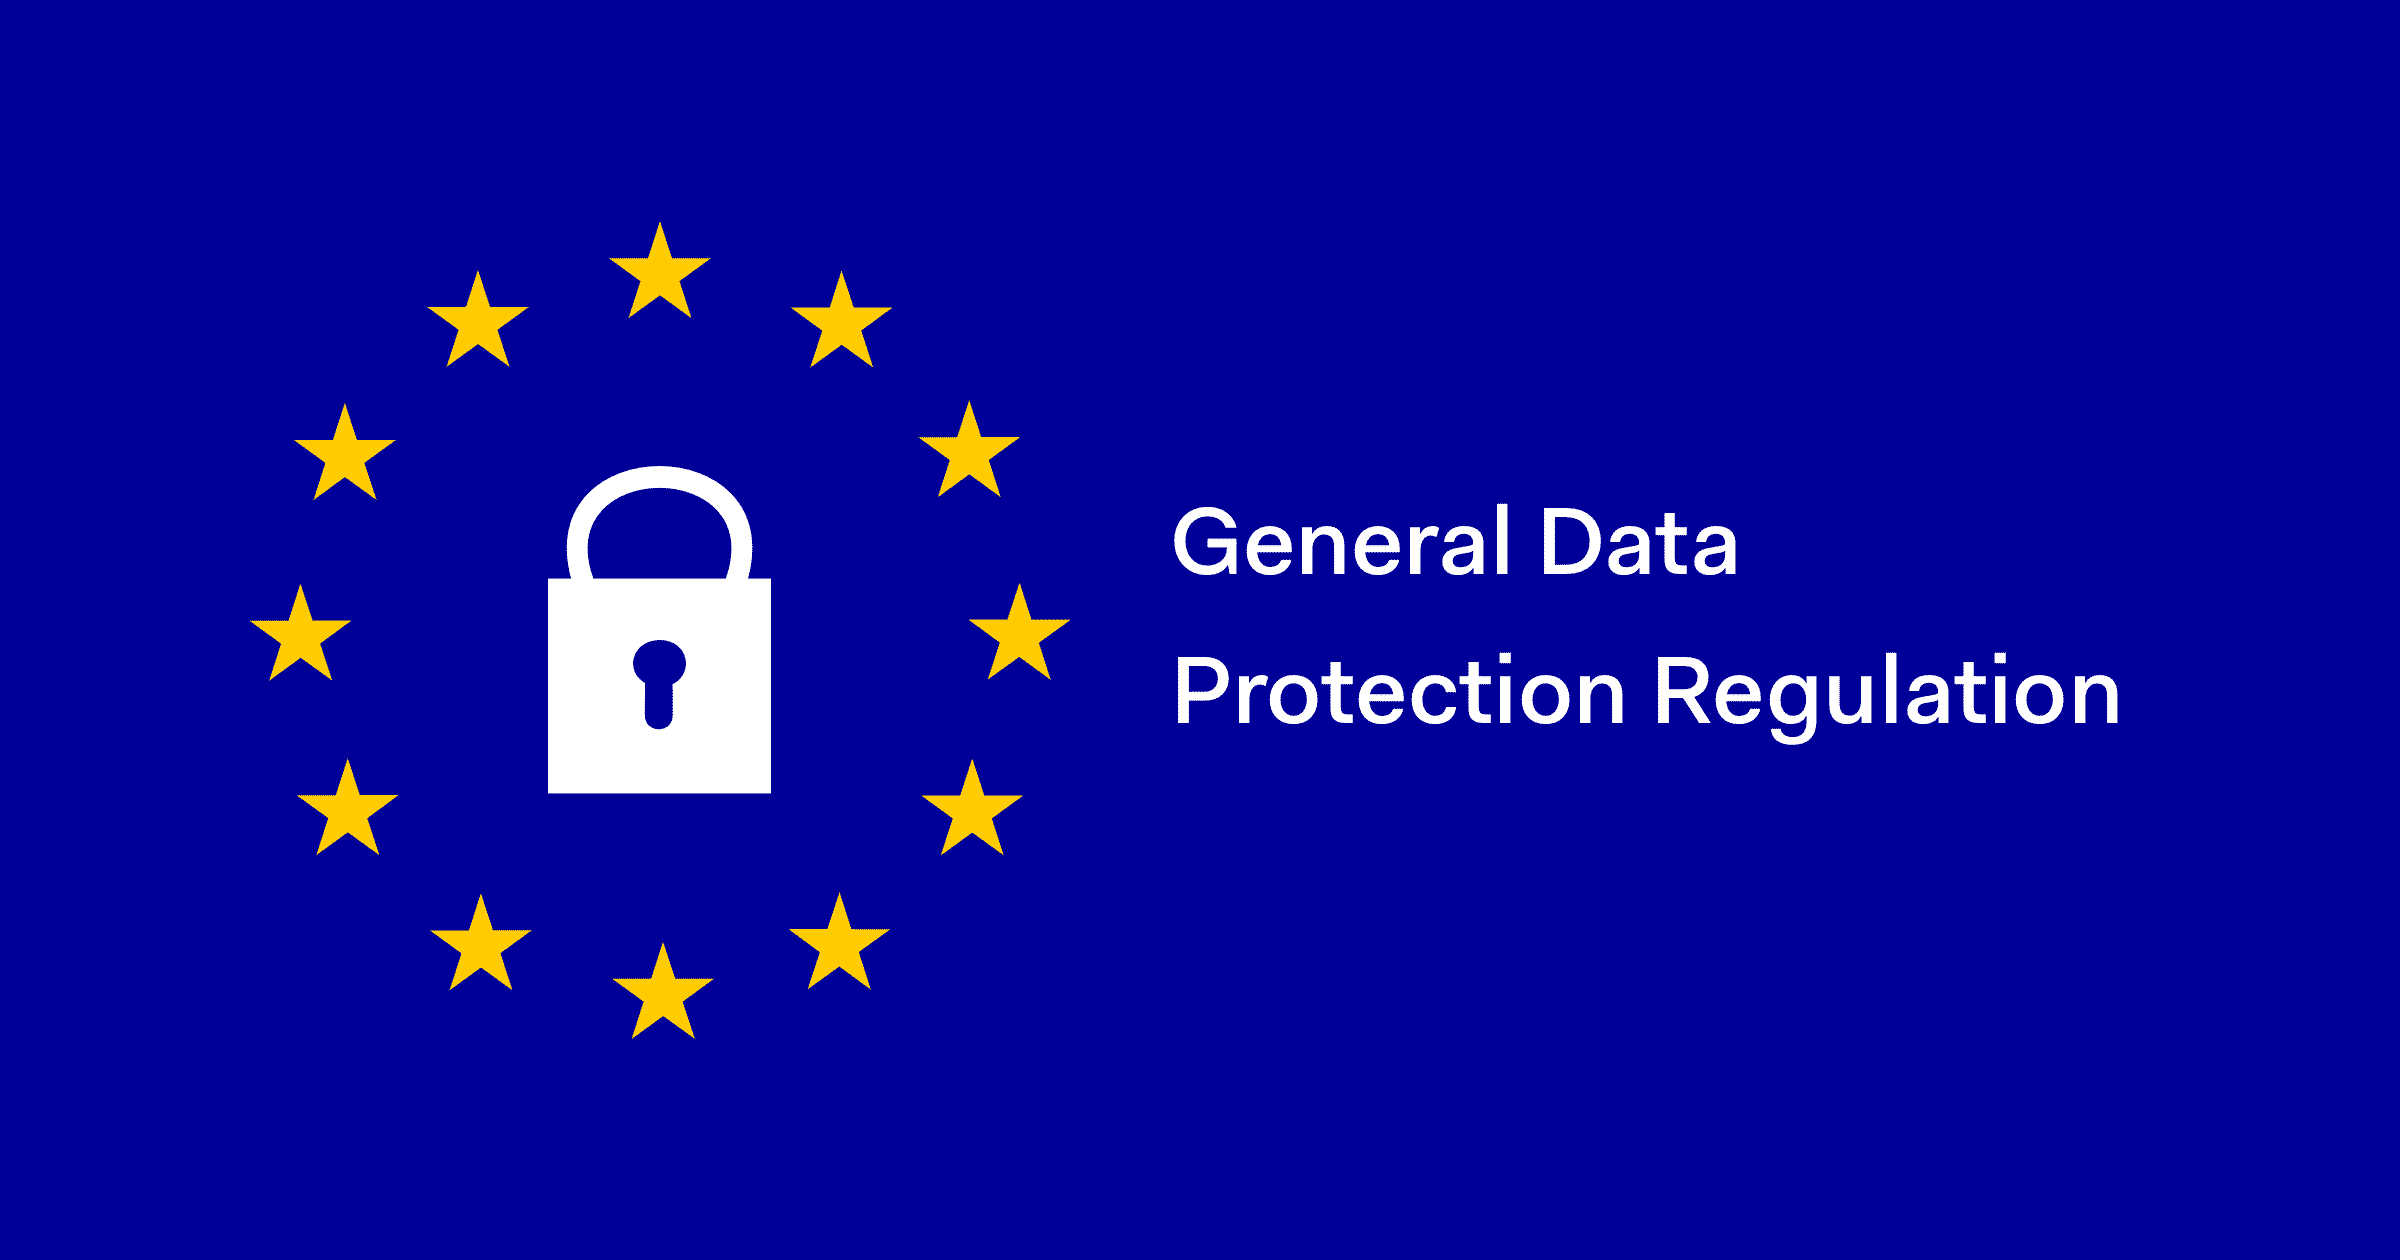 The European Union has published an information site for GDPR